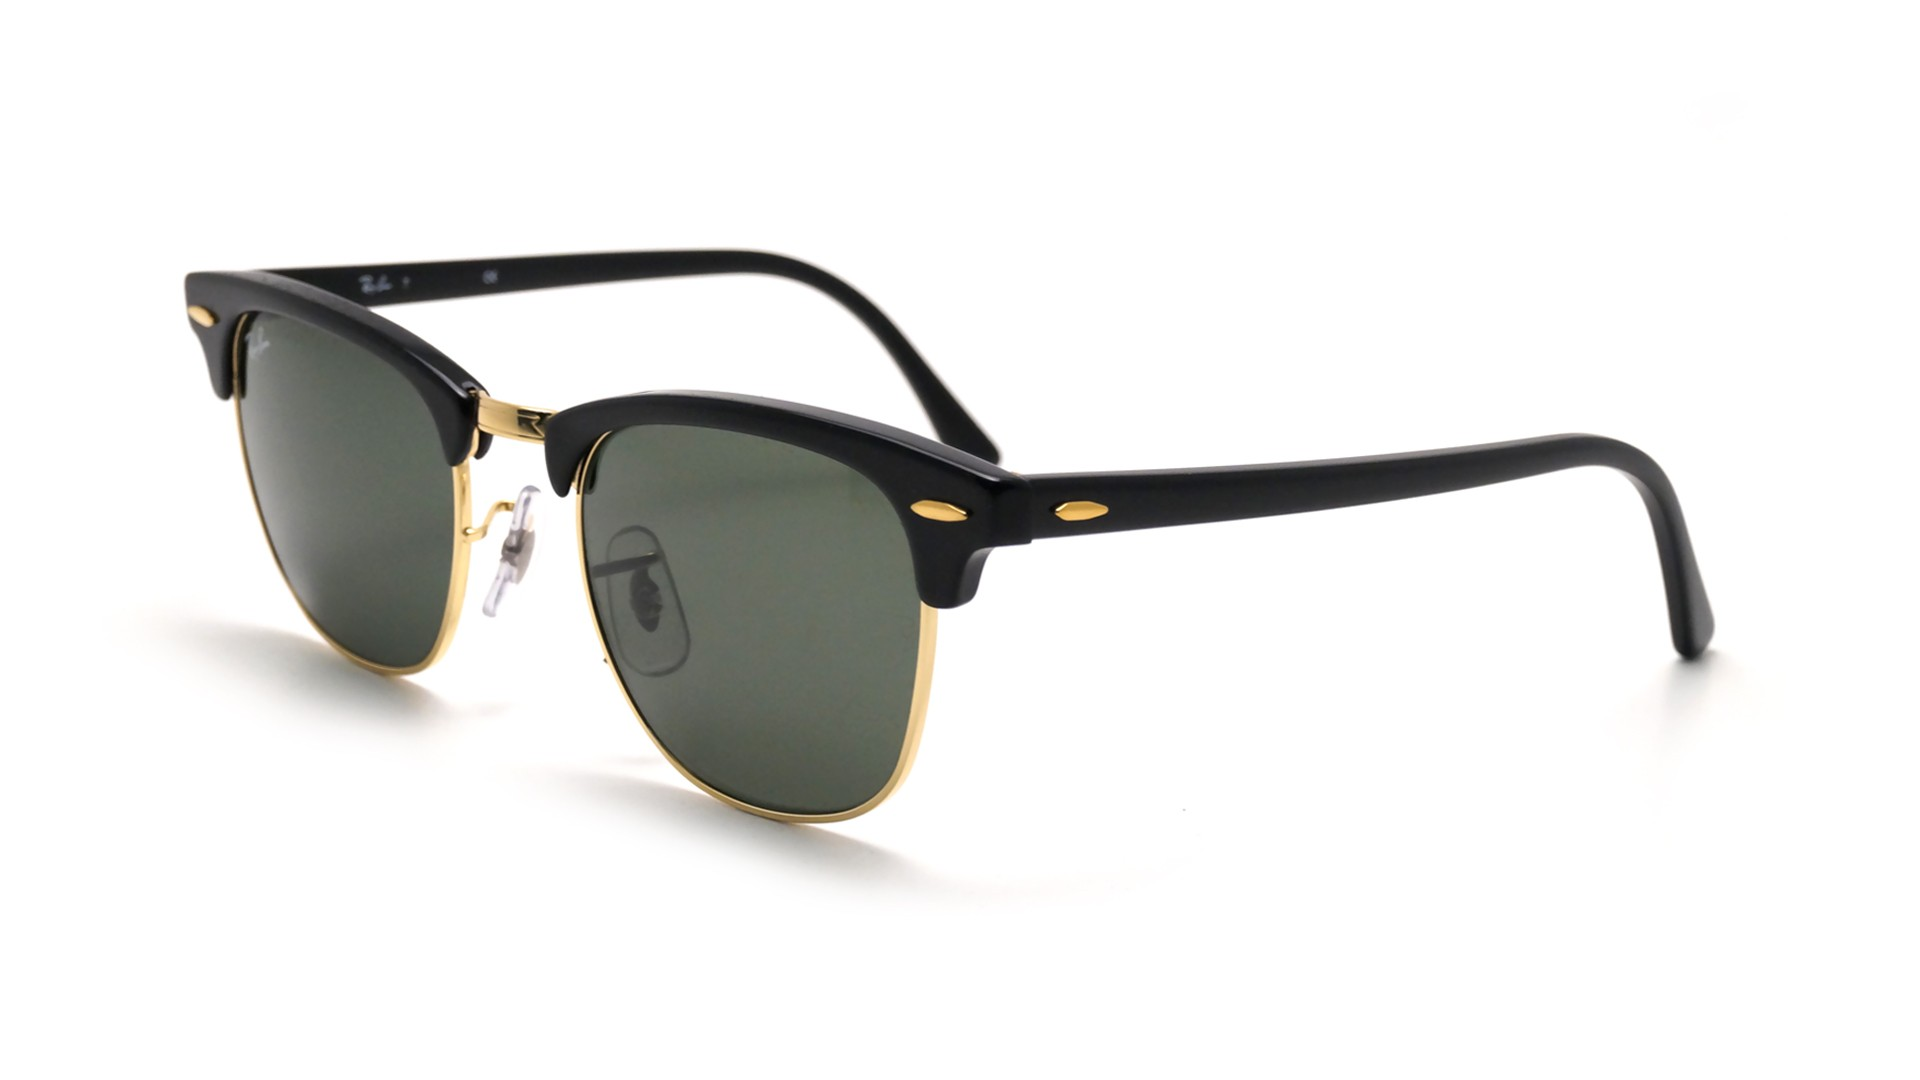 ray ban clubmaster rb3016 w0365 49 sunglasses  ray ban clubmaster black rb3016 w0365 49 21